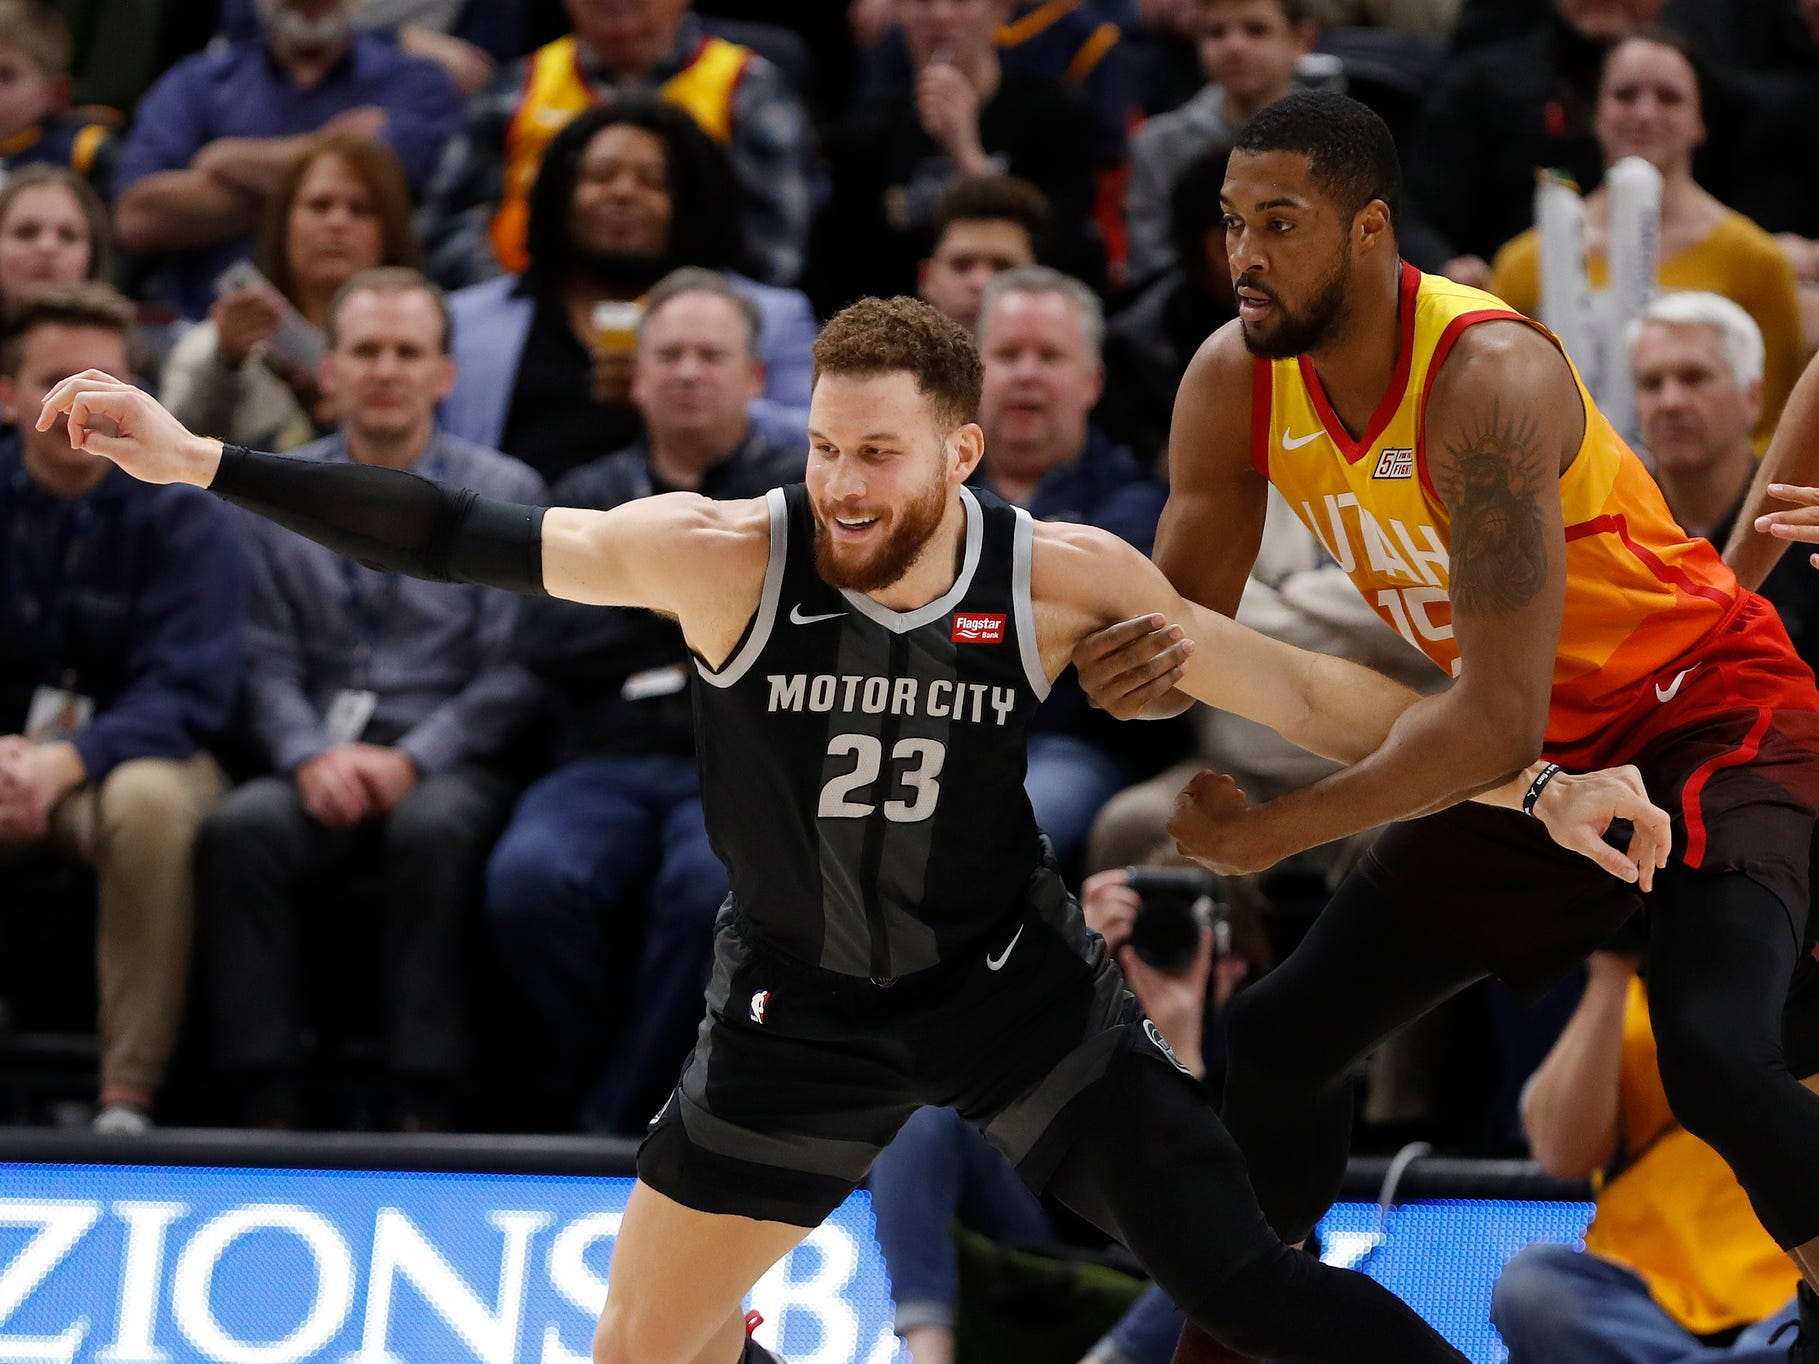 Pistons forward Blake Griffin is held back from a loose ball by Jazz forward Derrick Favors in the third quarter of the 100-94 loss to the Jazz on Monday, Jan. 14, 2019, in Salt Lake City.